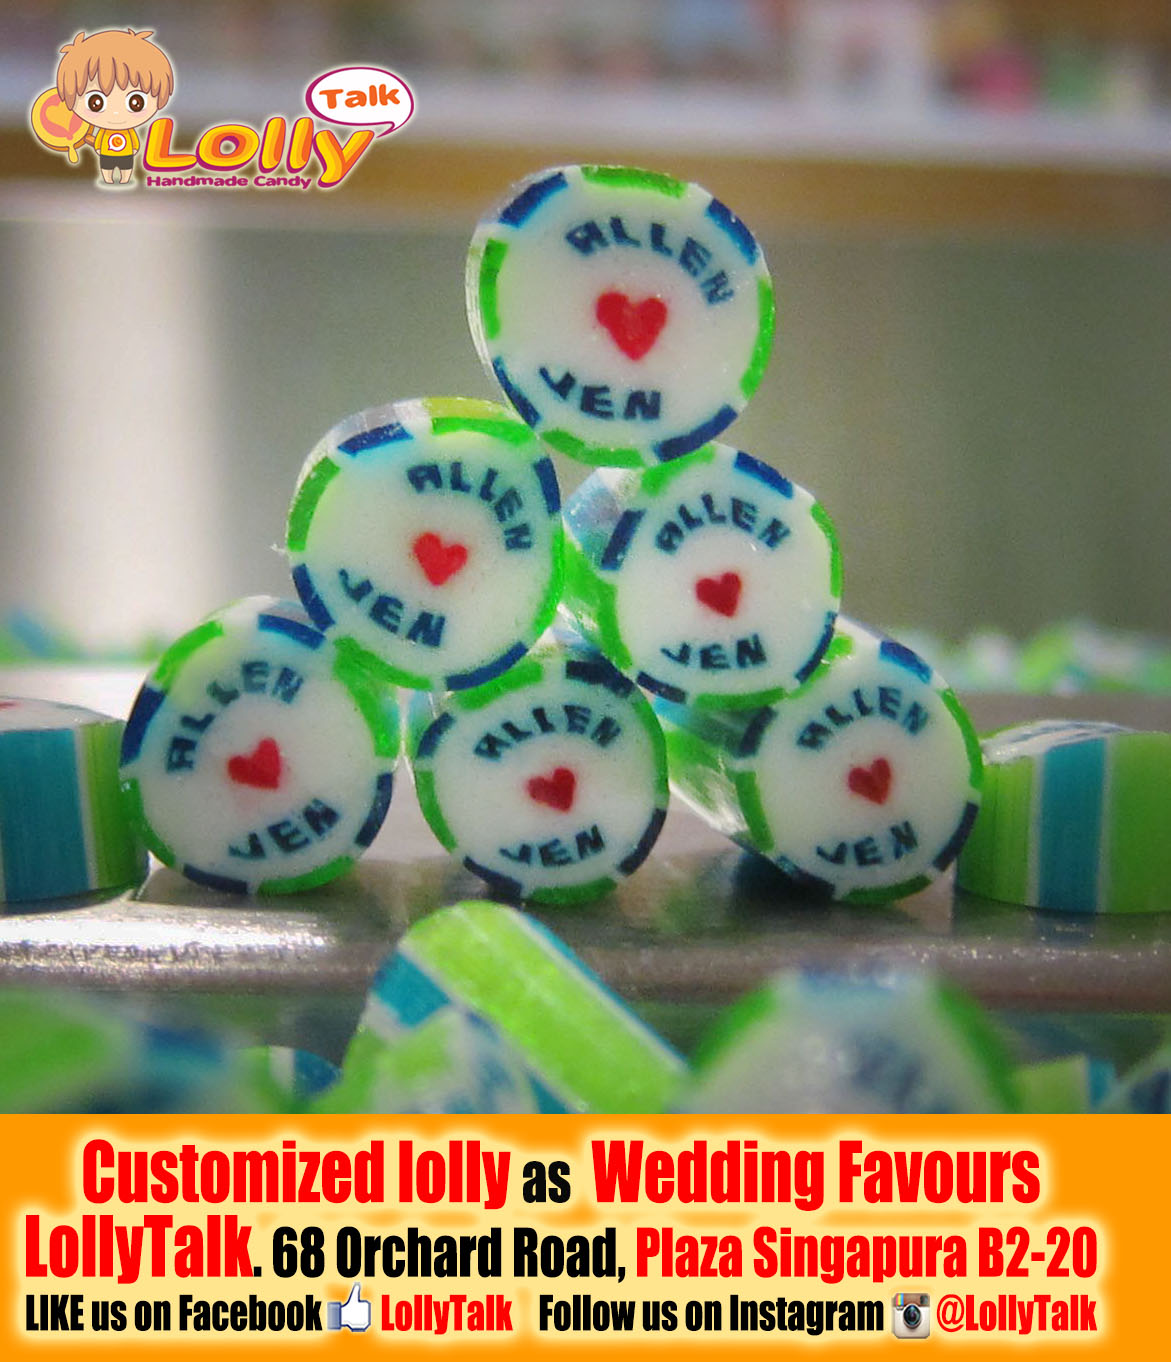 Customized Candy with Couple's names as Wedding Favors